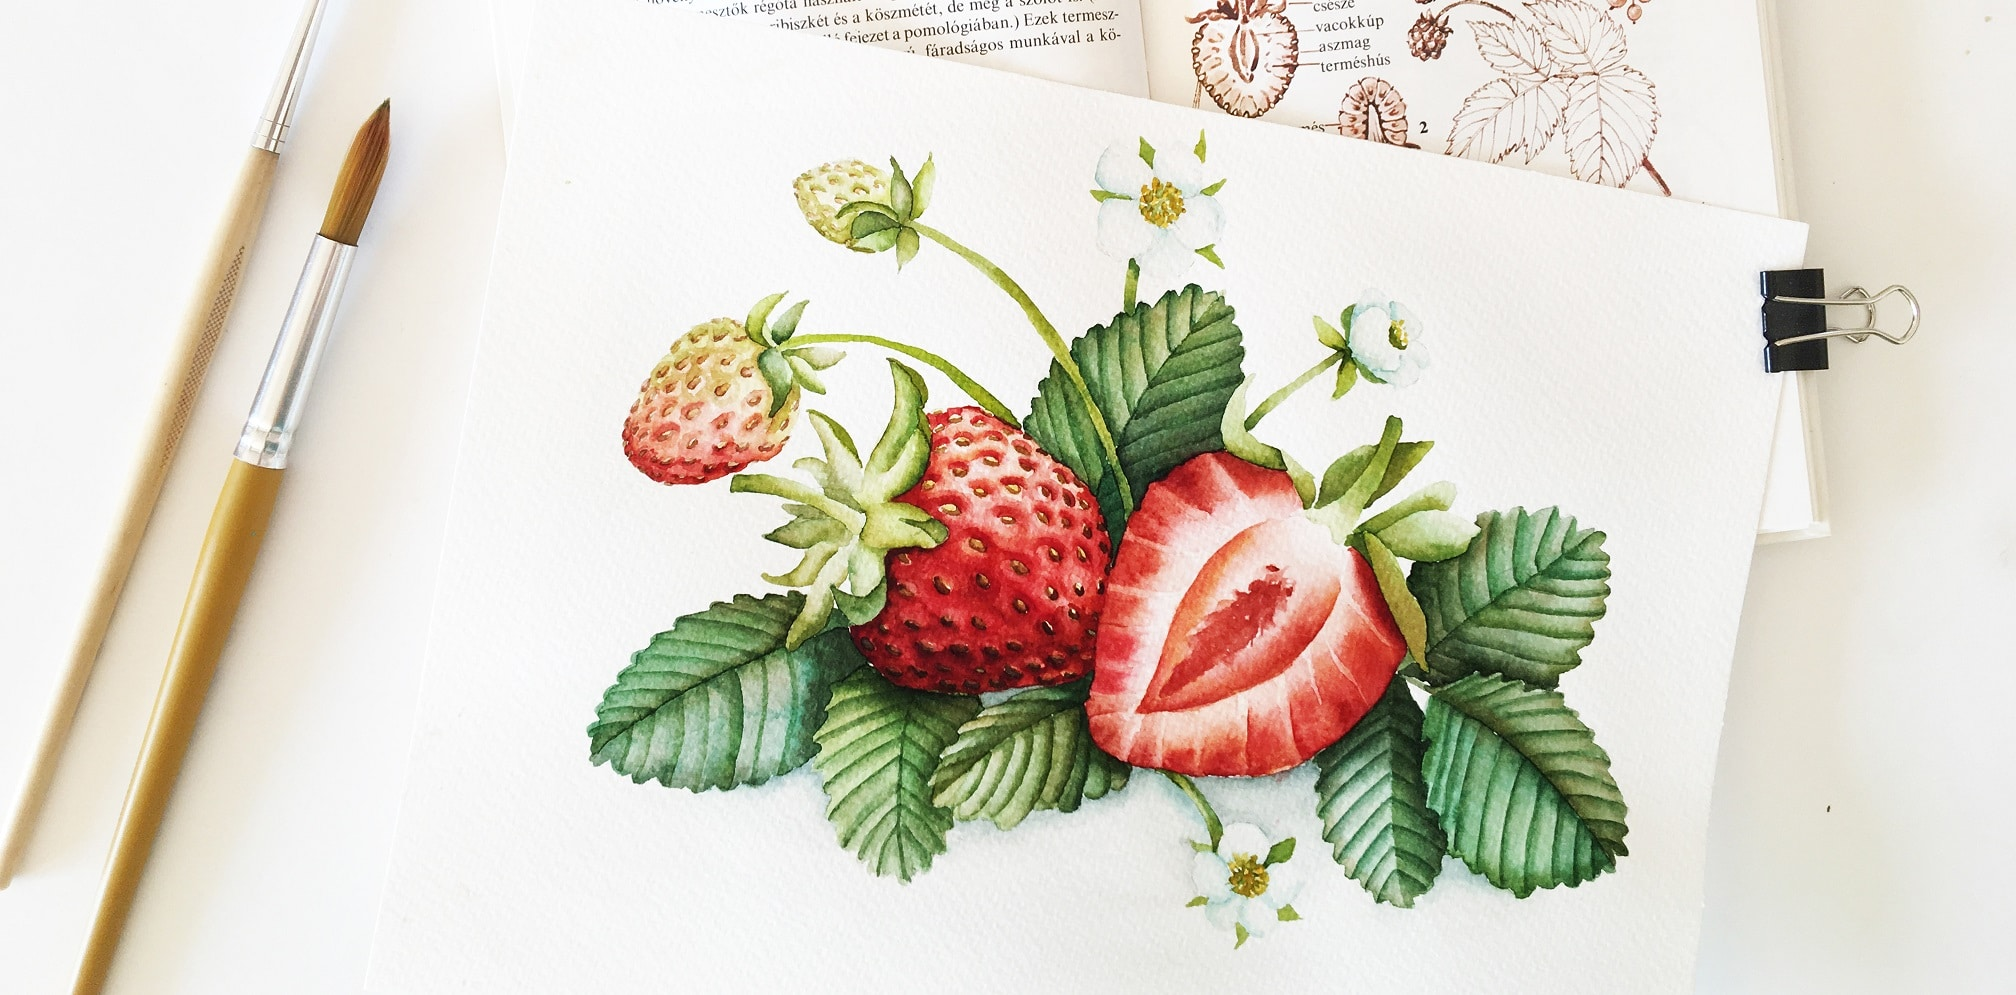 Watercolor Veggies - strawberries